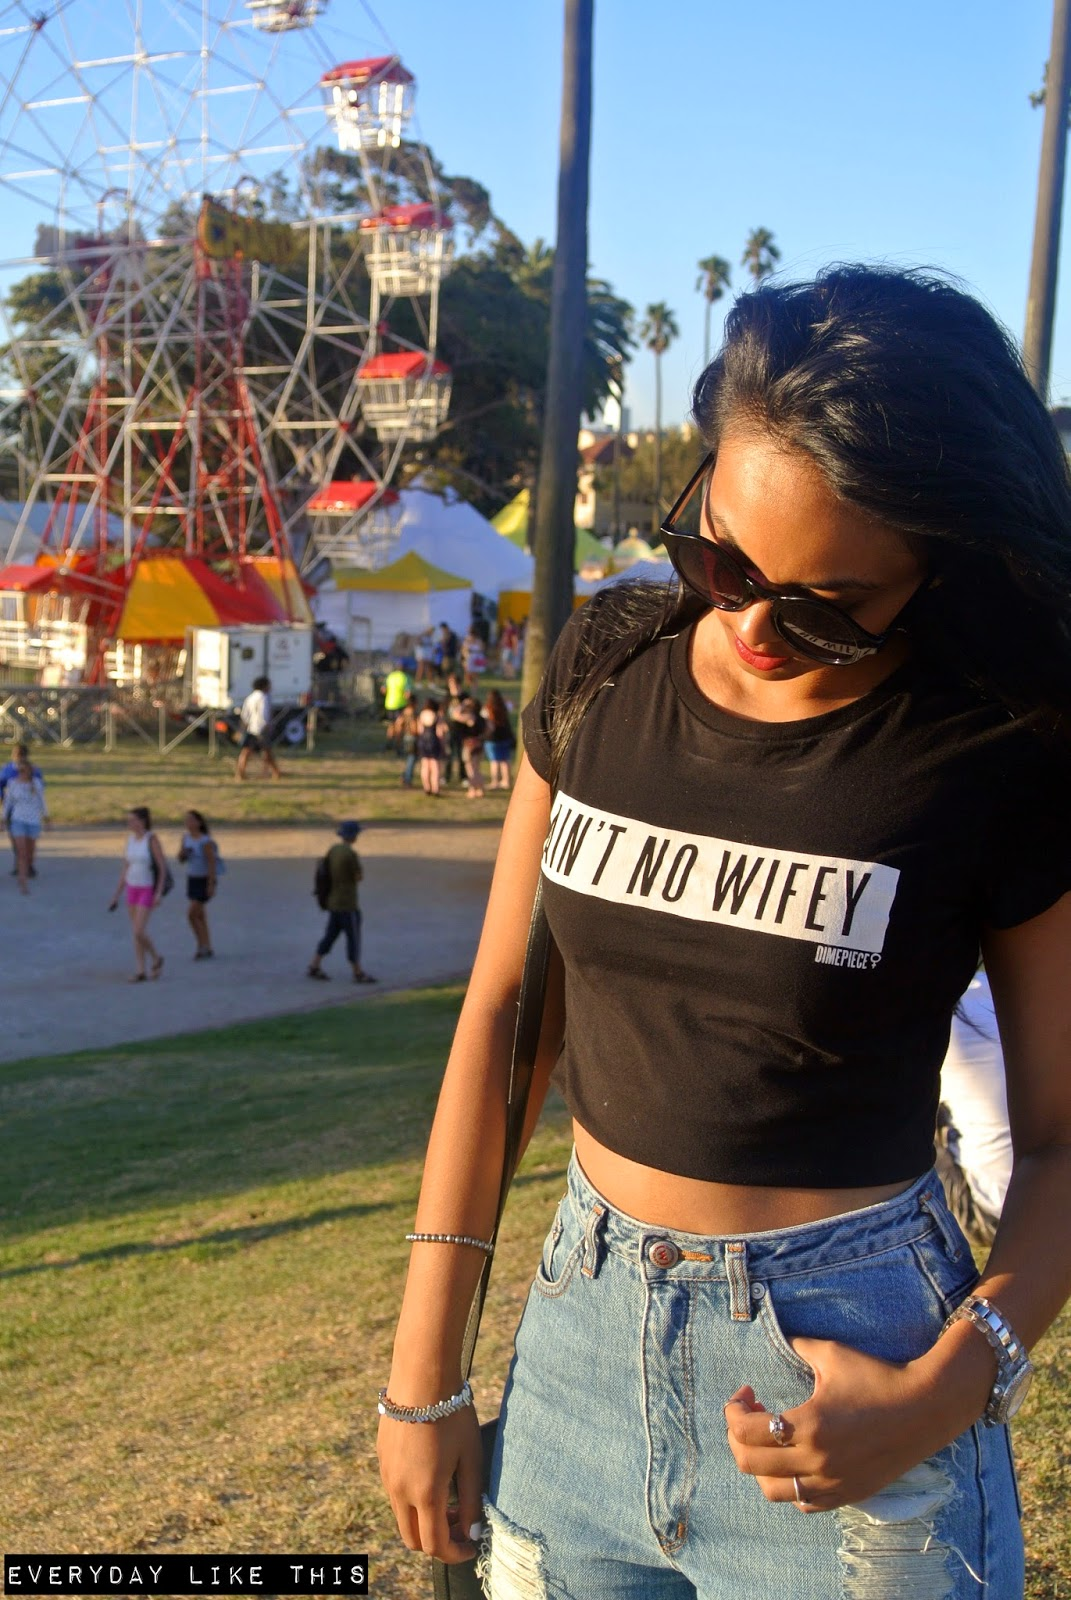 Ain't No Wifey - St Kilda Festival Melbourne dimepiece everyday like this